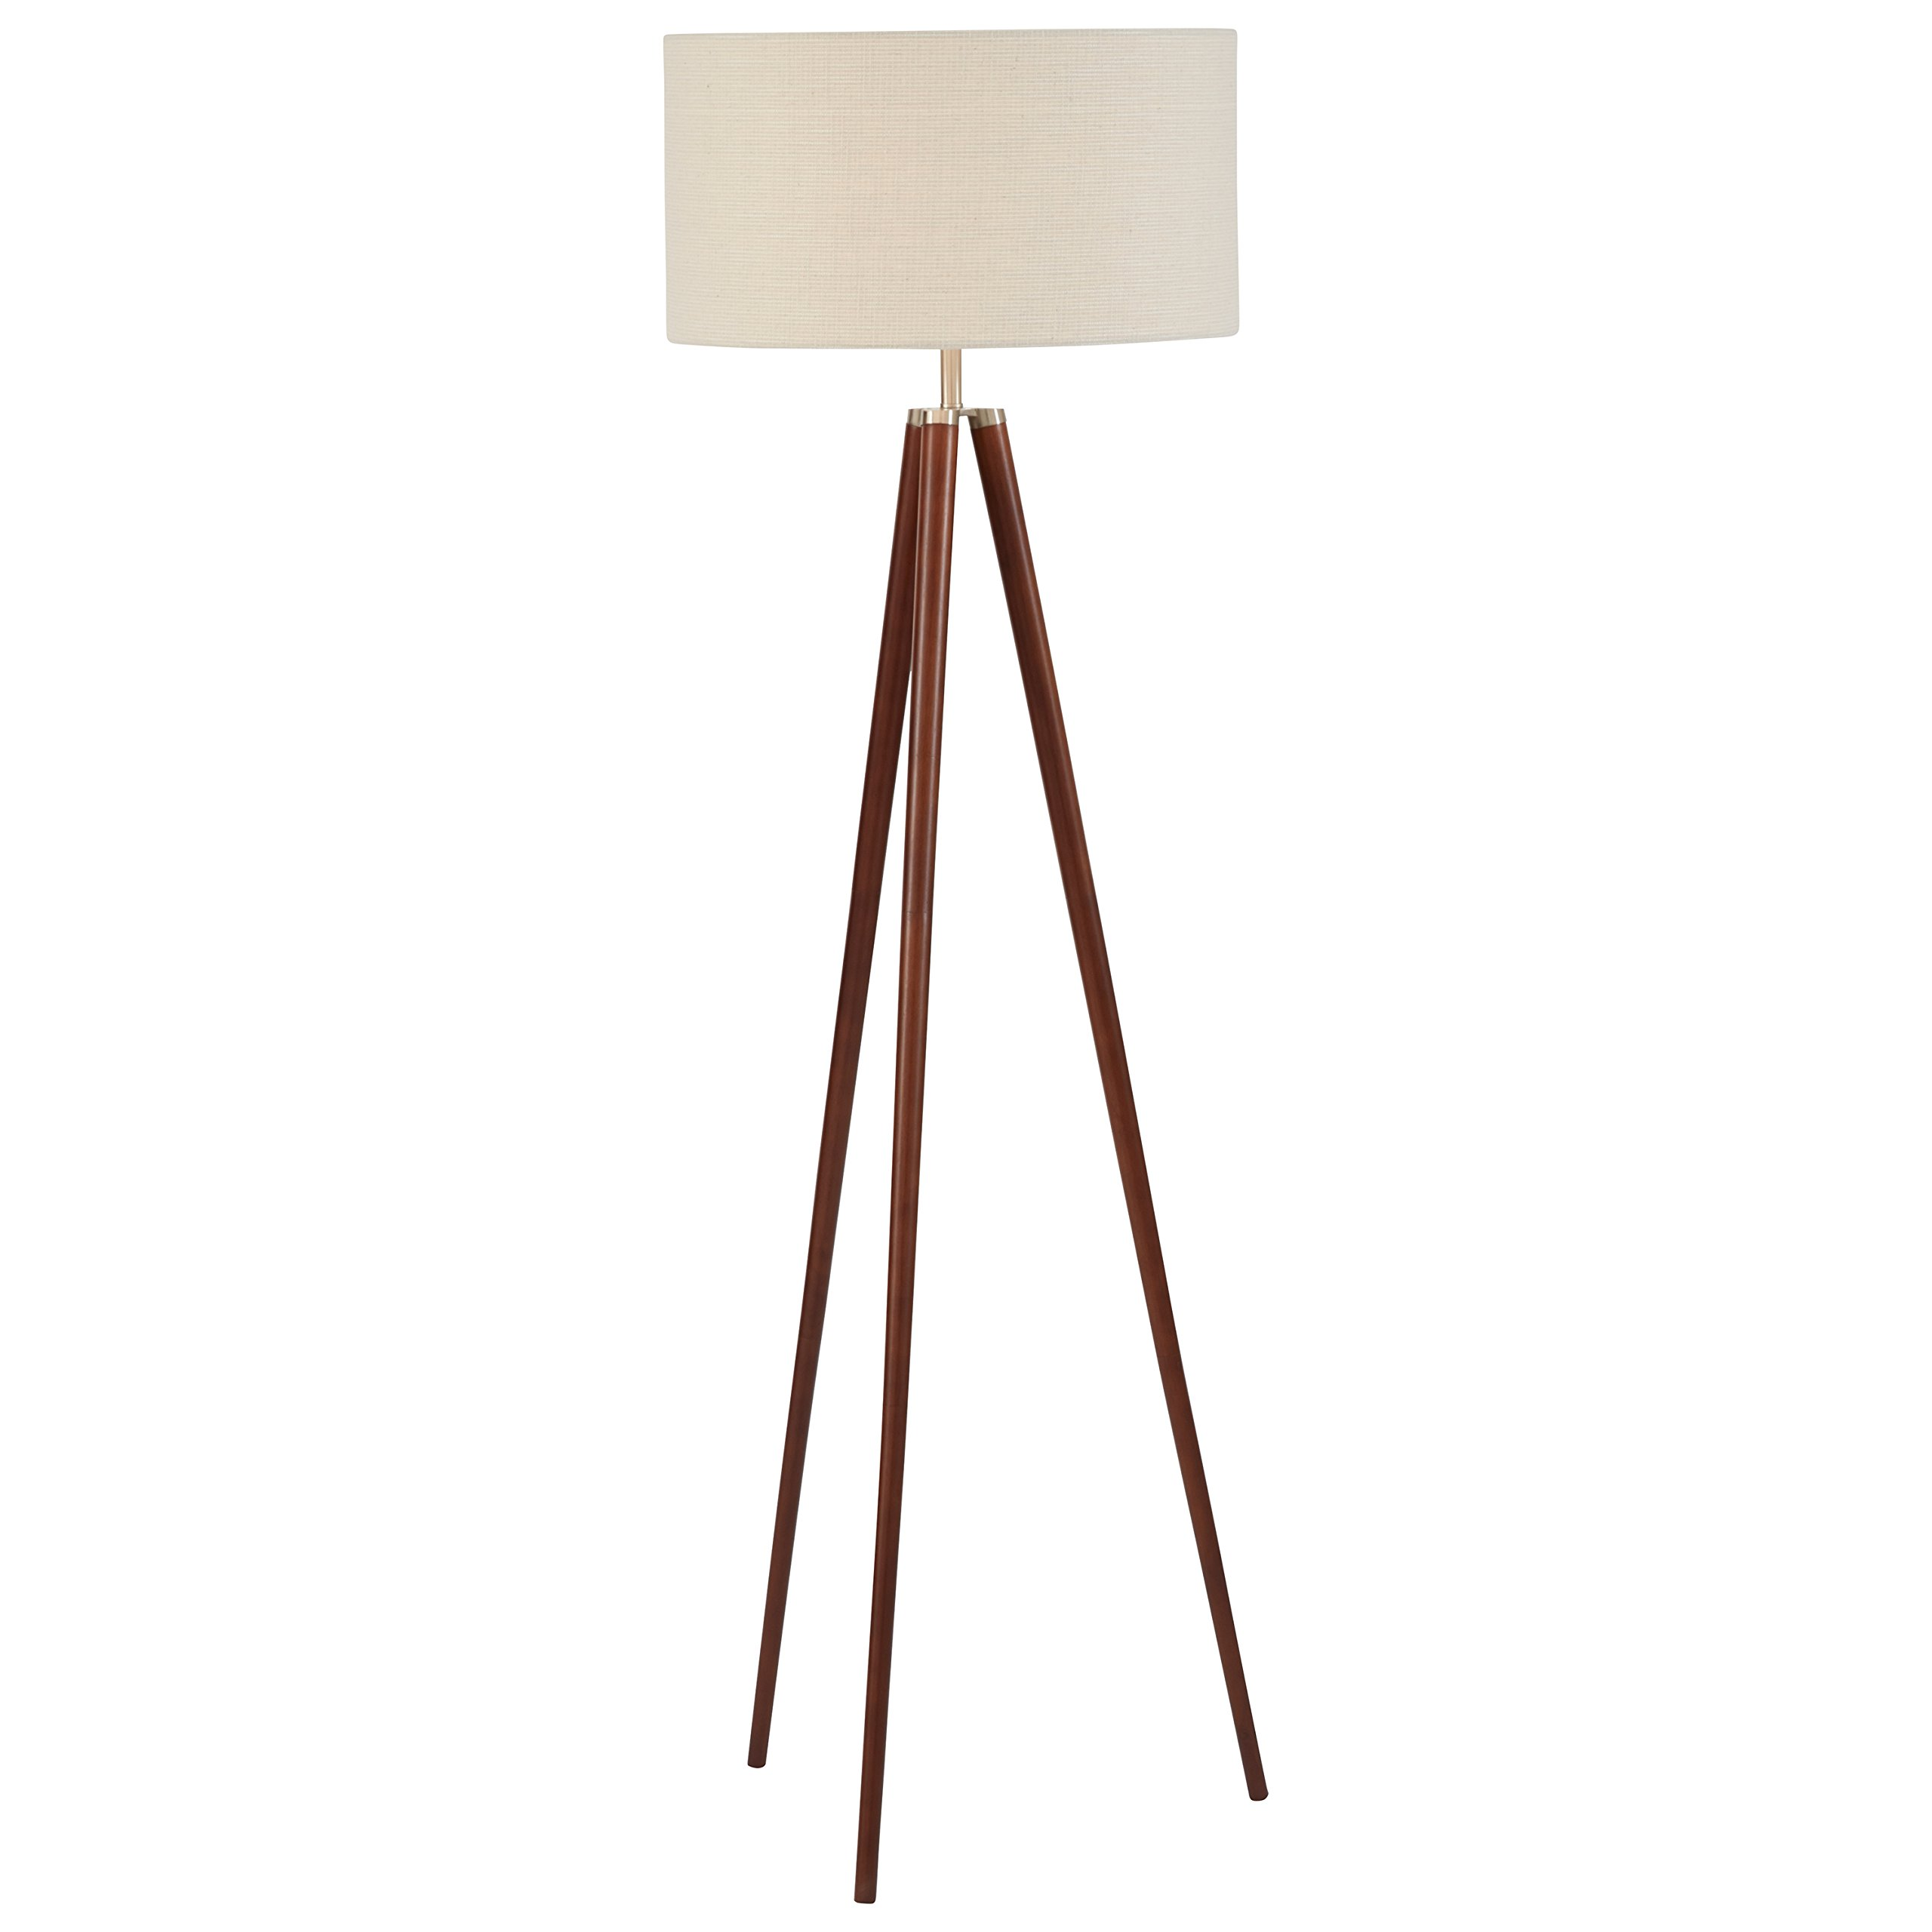 Stone & Beam Modern Tripod Floor Lamp, 61''H, With Bulb, White Shade by Stone & Beam